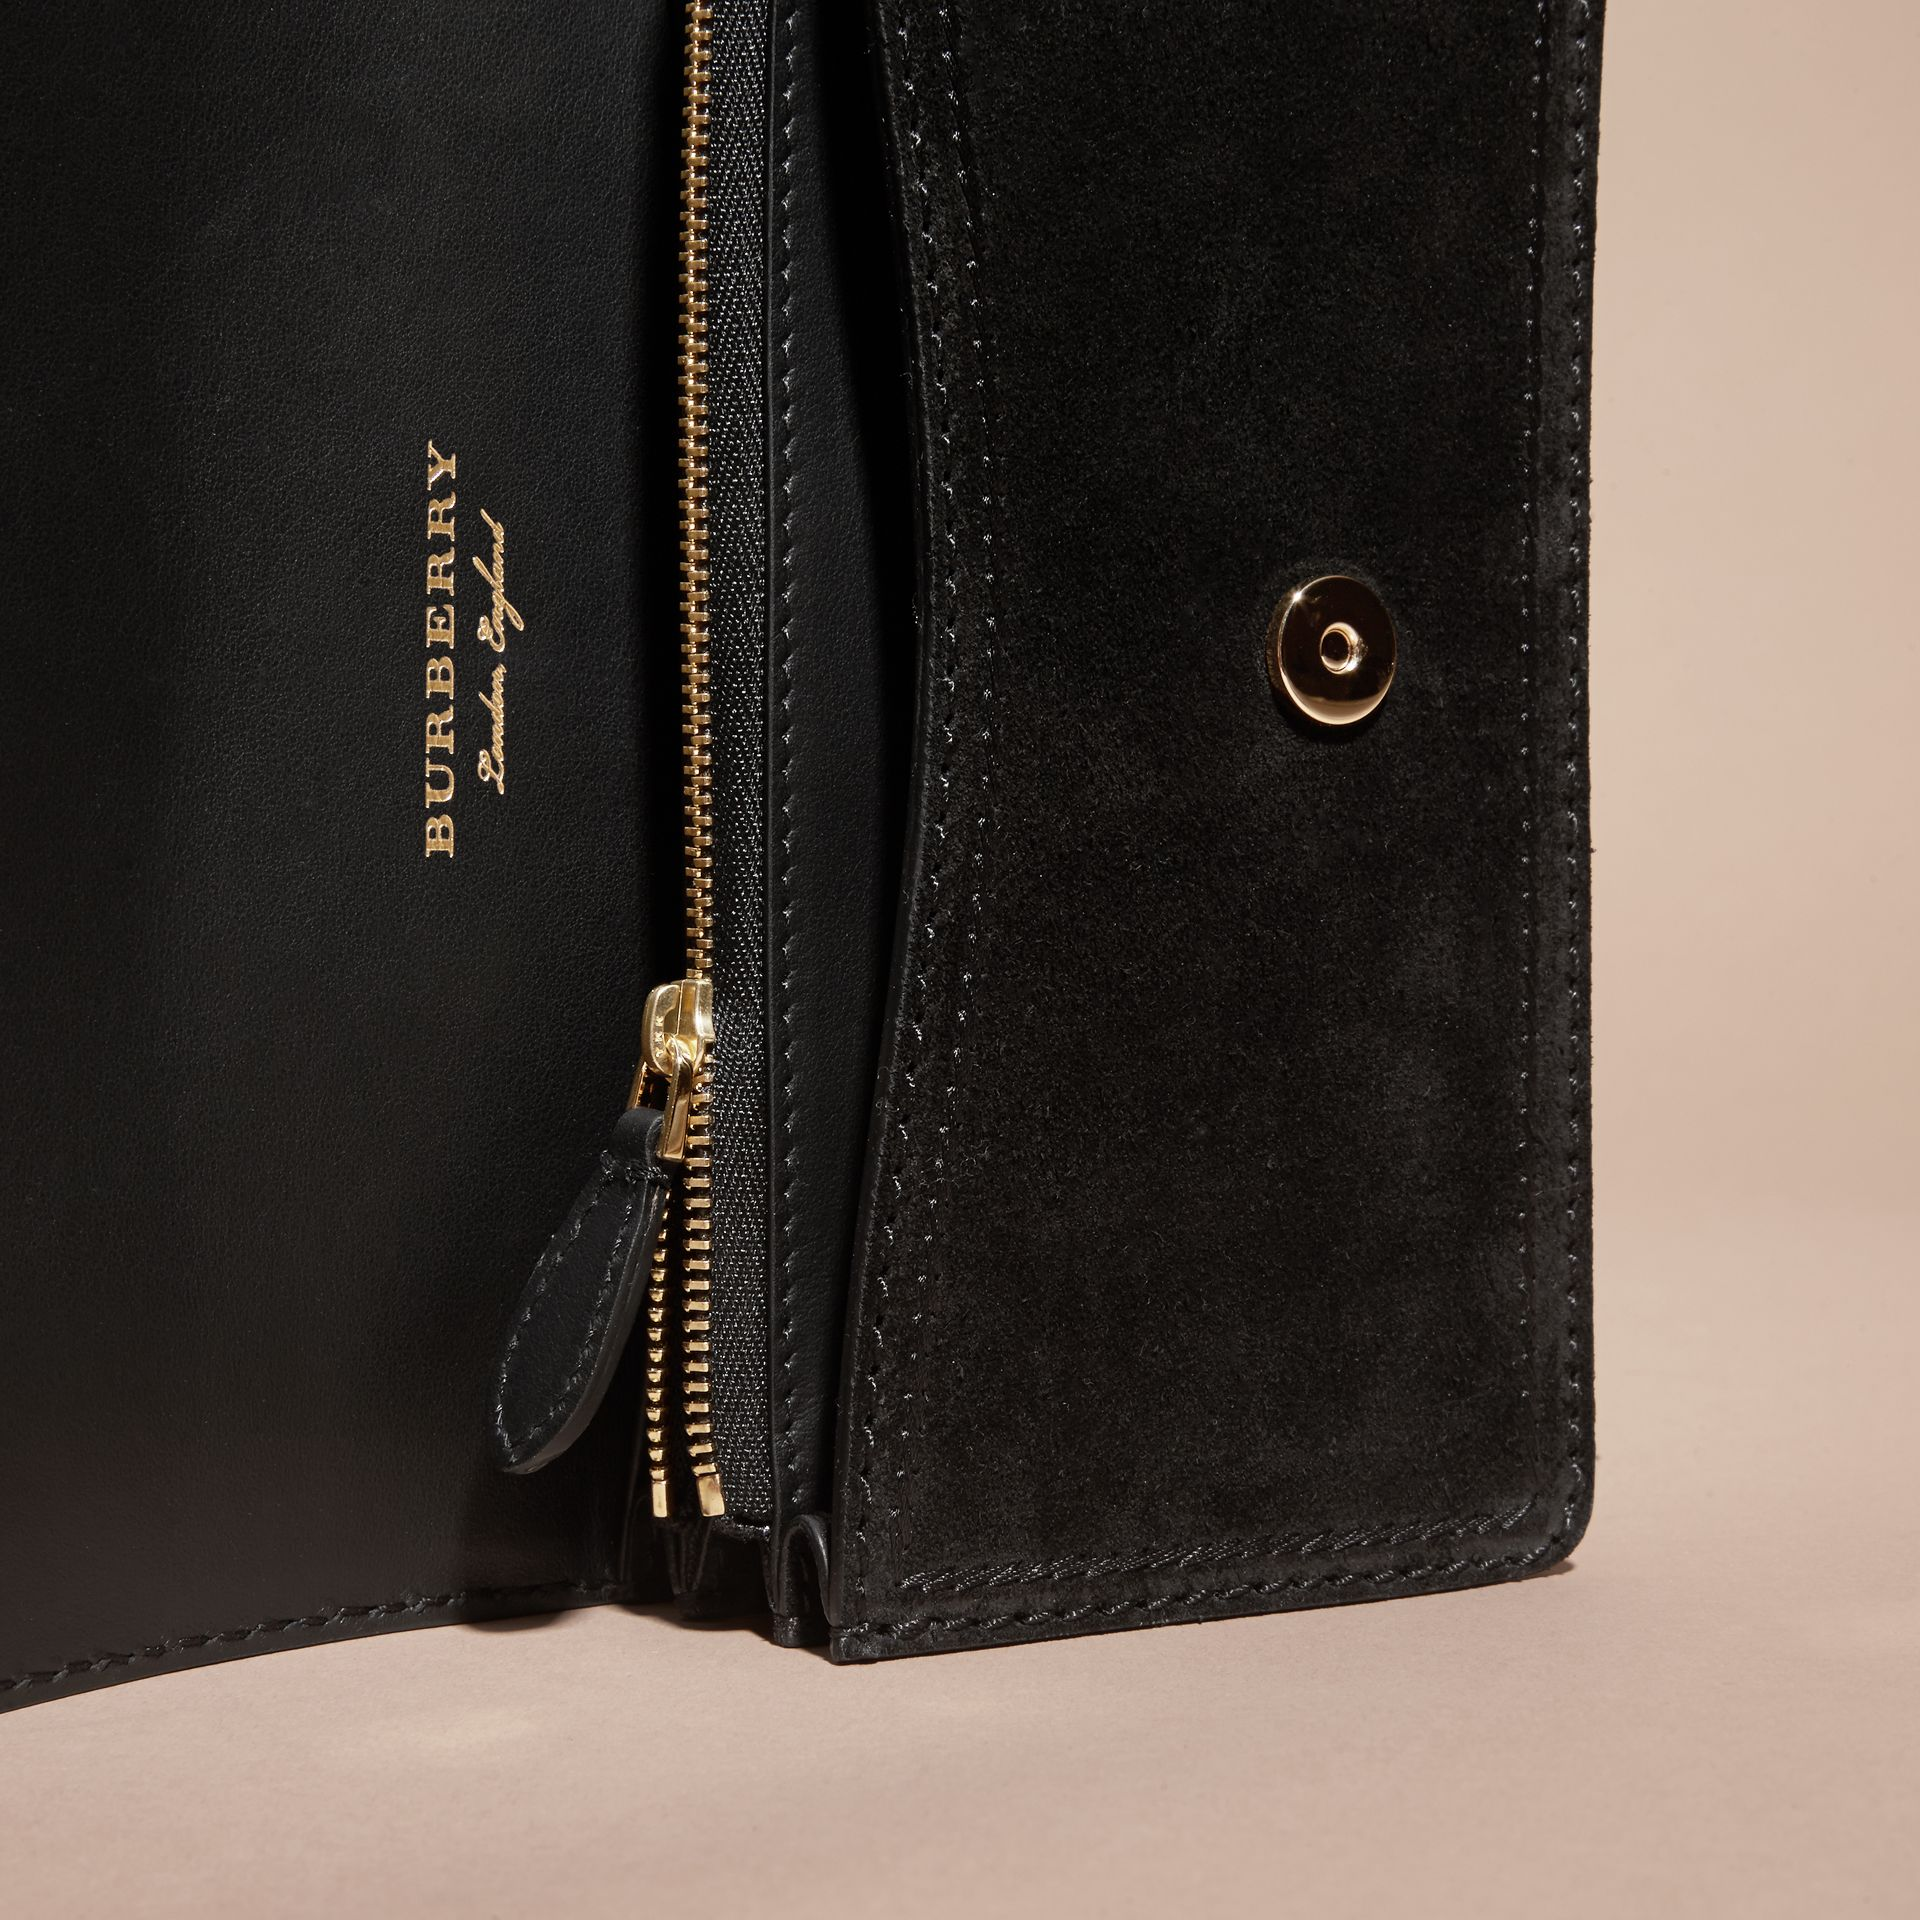 The Small Buckle Bag in Suede with Topstitching in Black / Tan - gallery image 6